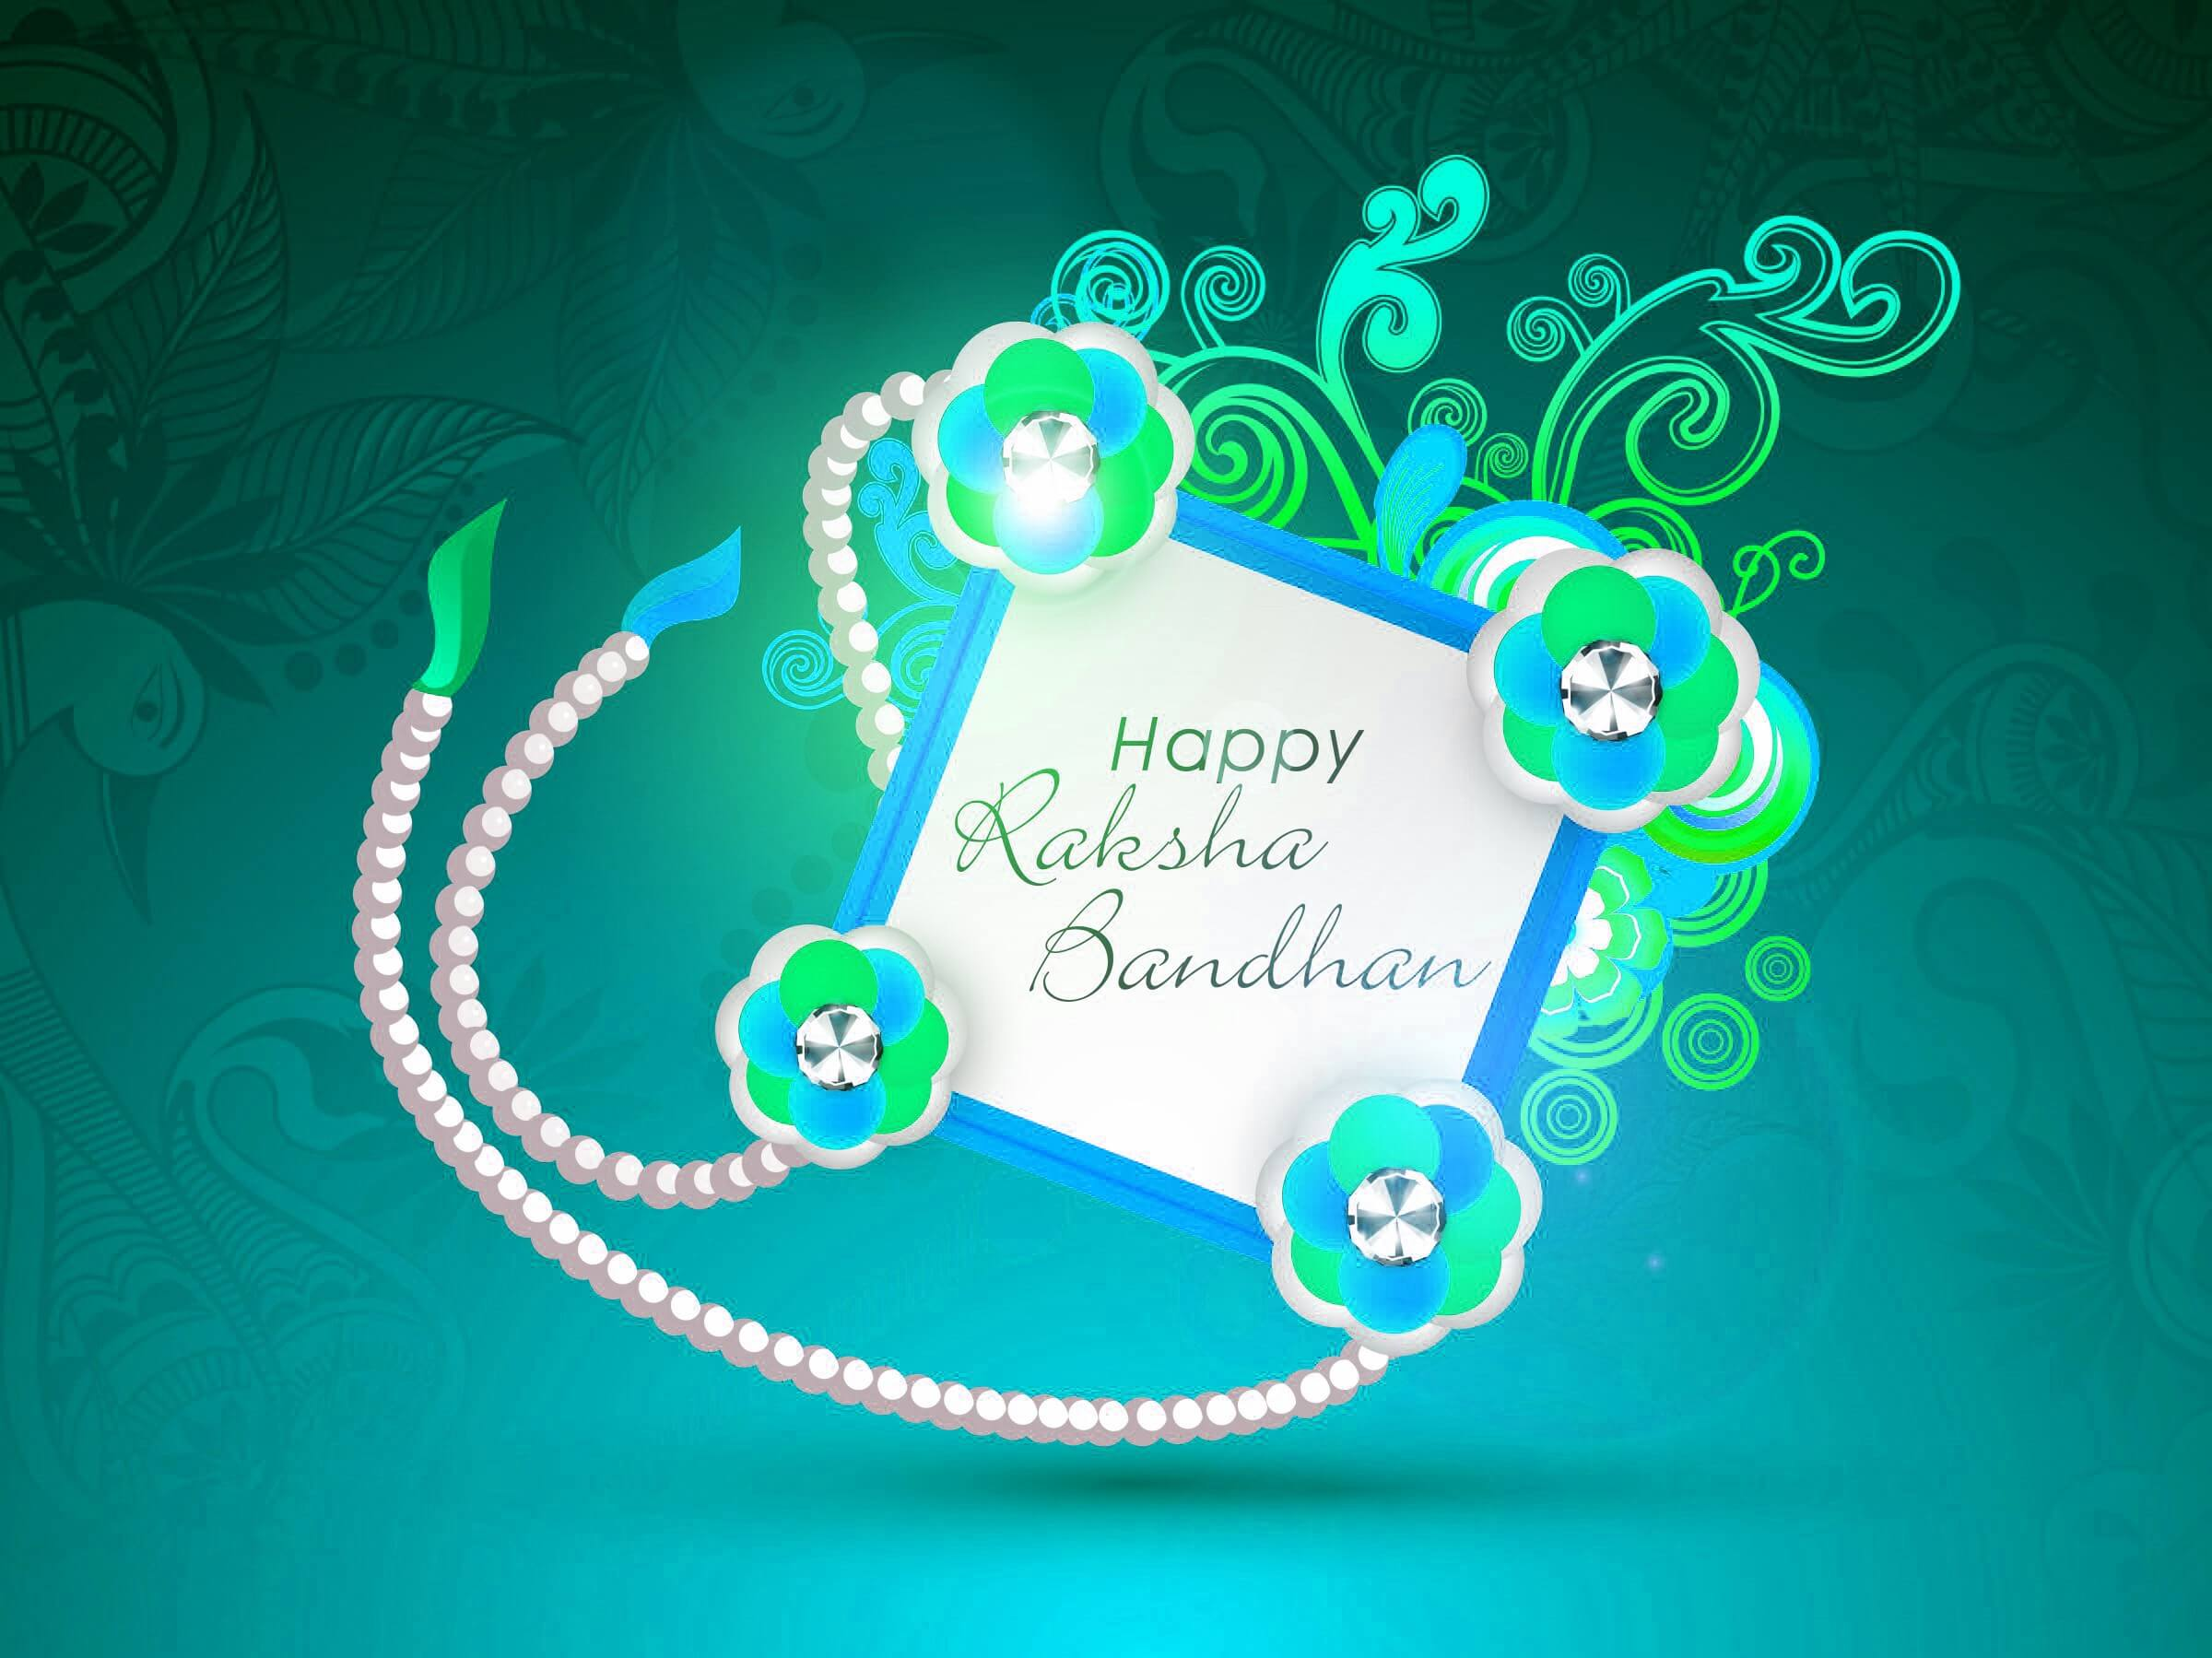 happy Raksha Bandhan images wallpapers Hd greeting cards